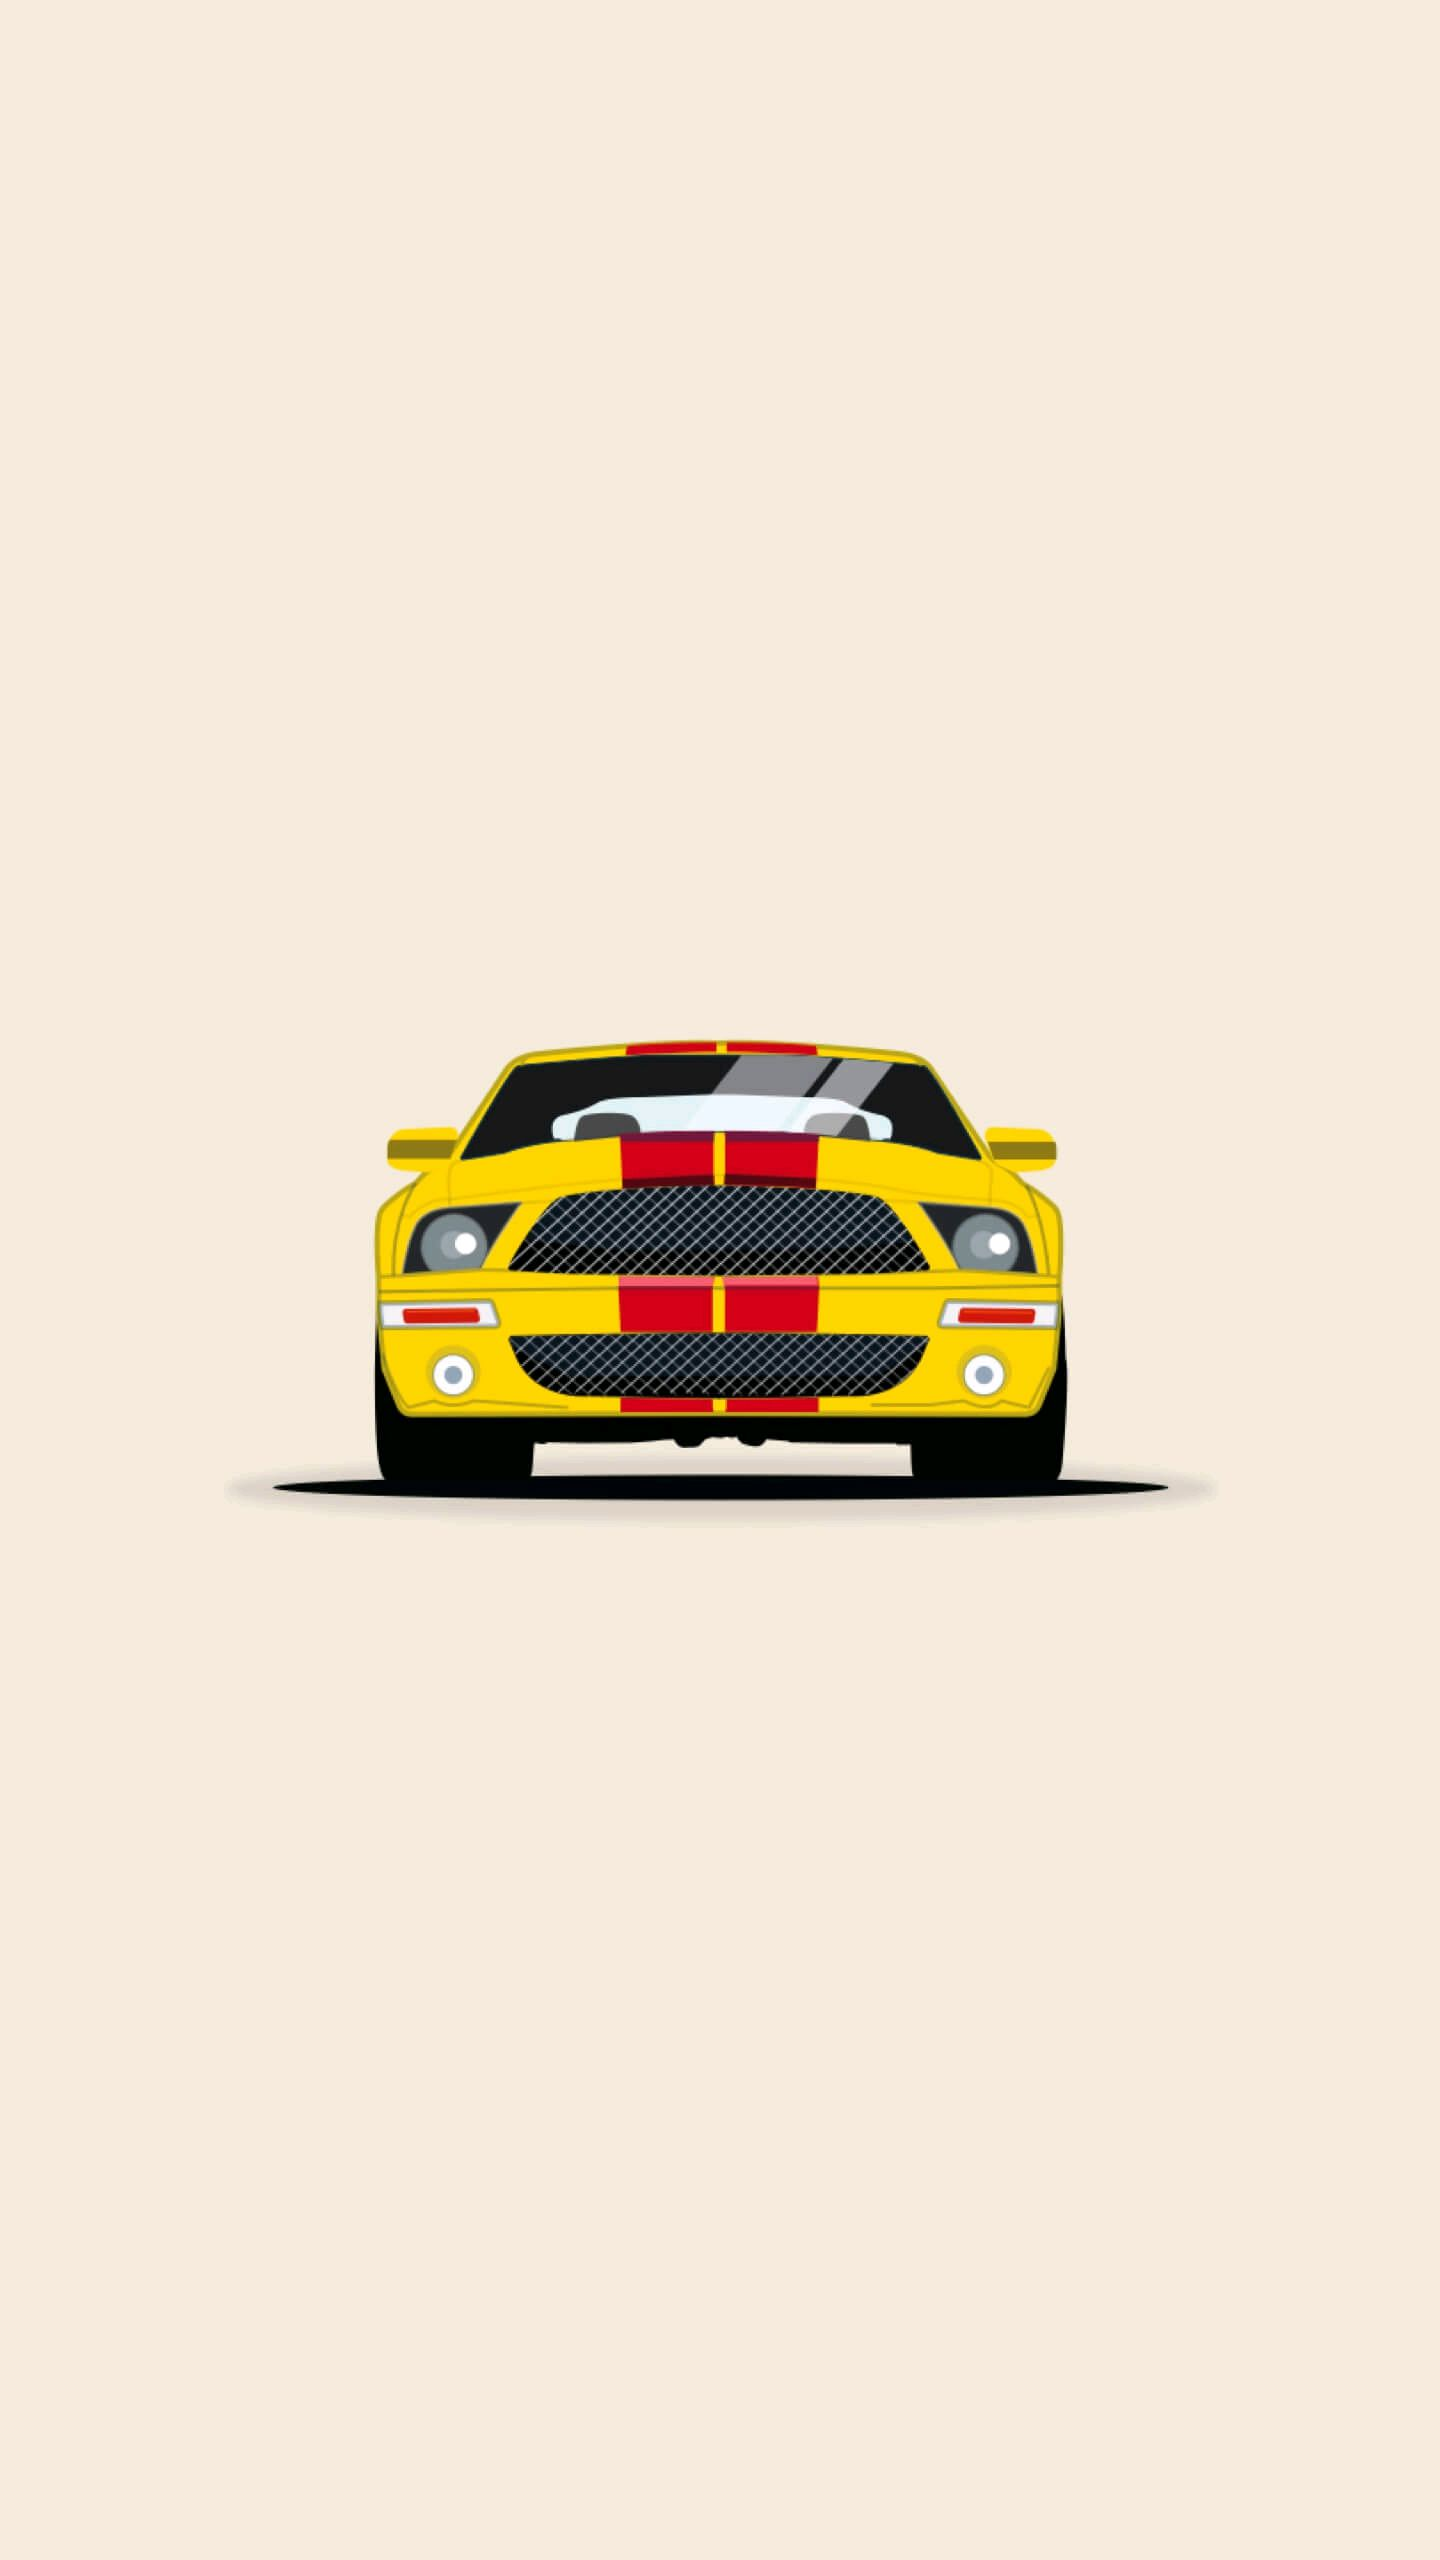 Mustang Minimal iPhone Wallpaper iphoneswallpapers com